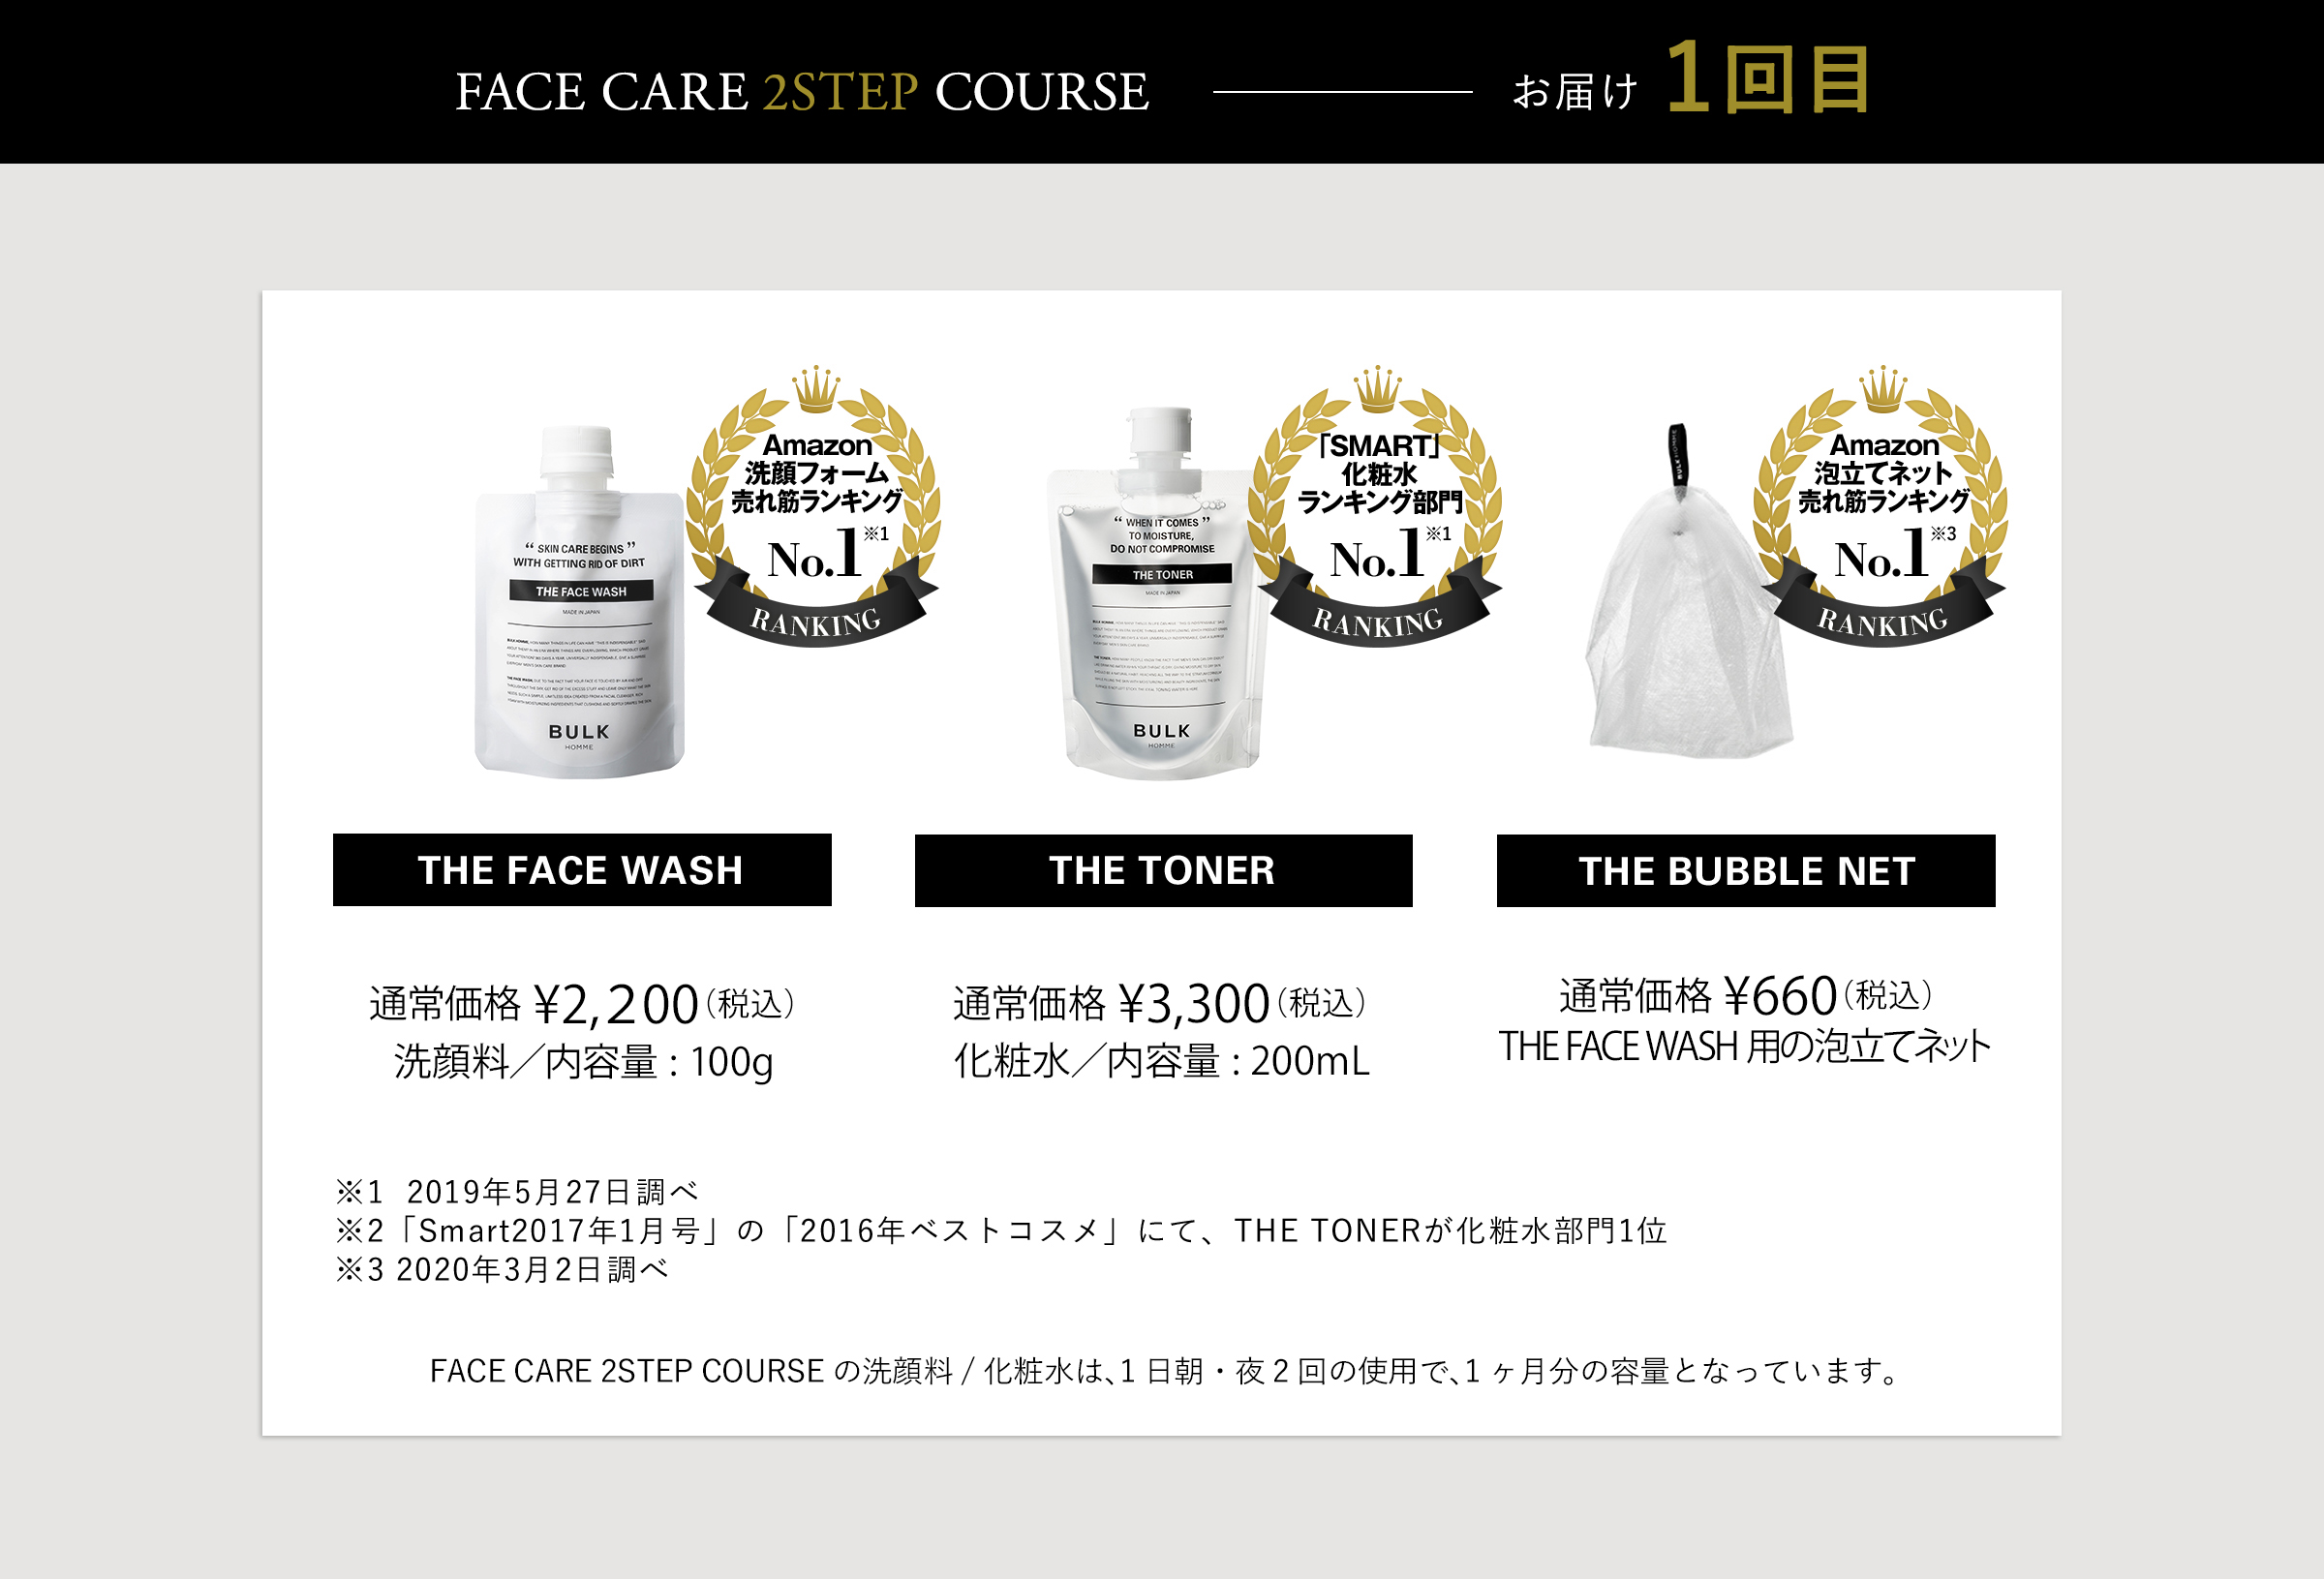 FACE CARE 2STEP ROUTINE COURSE お届け 1回目